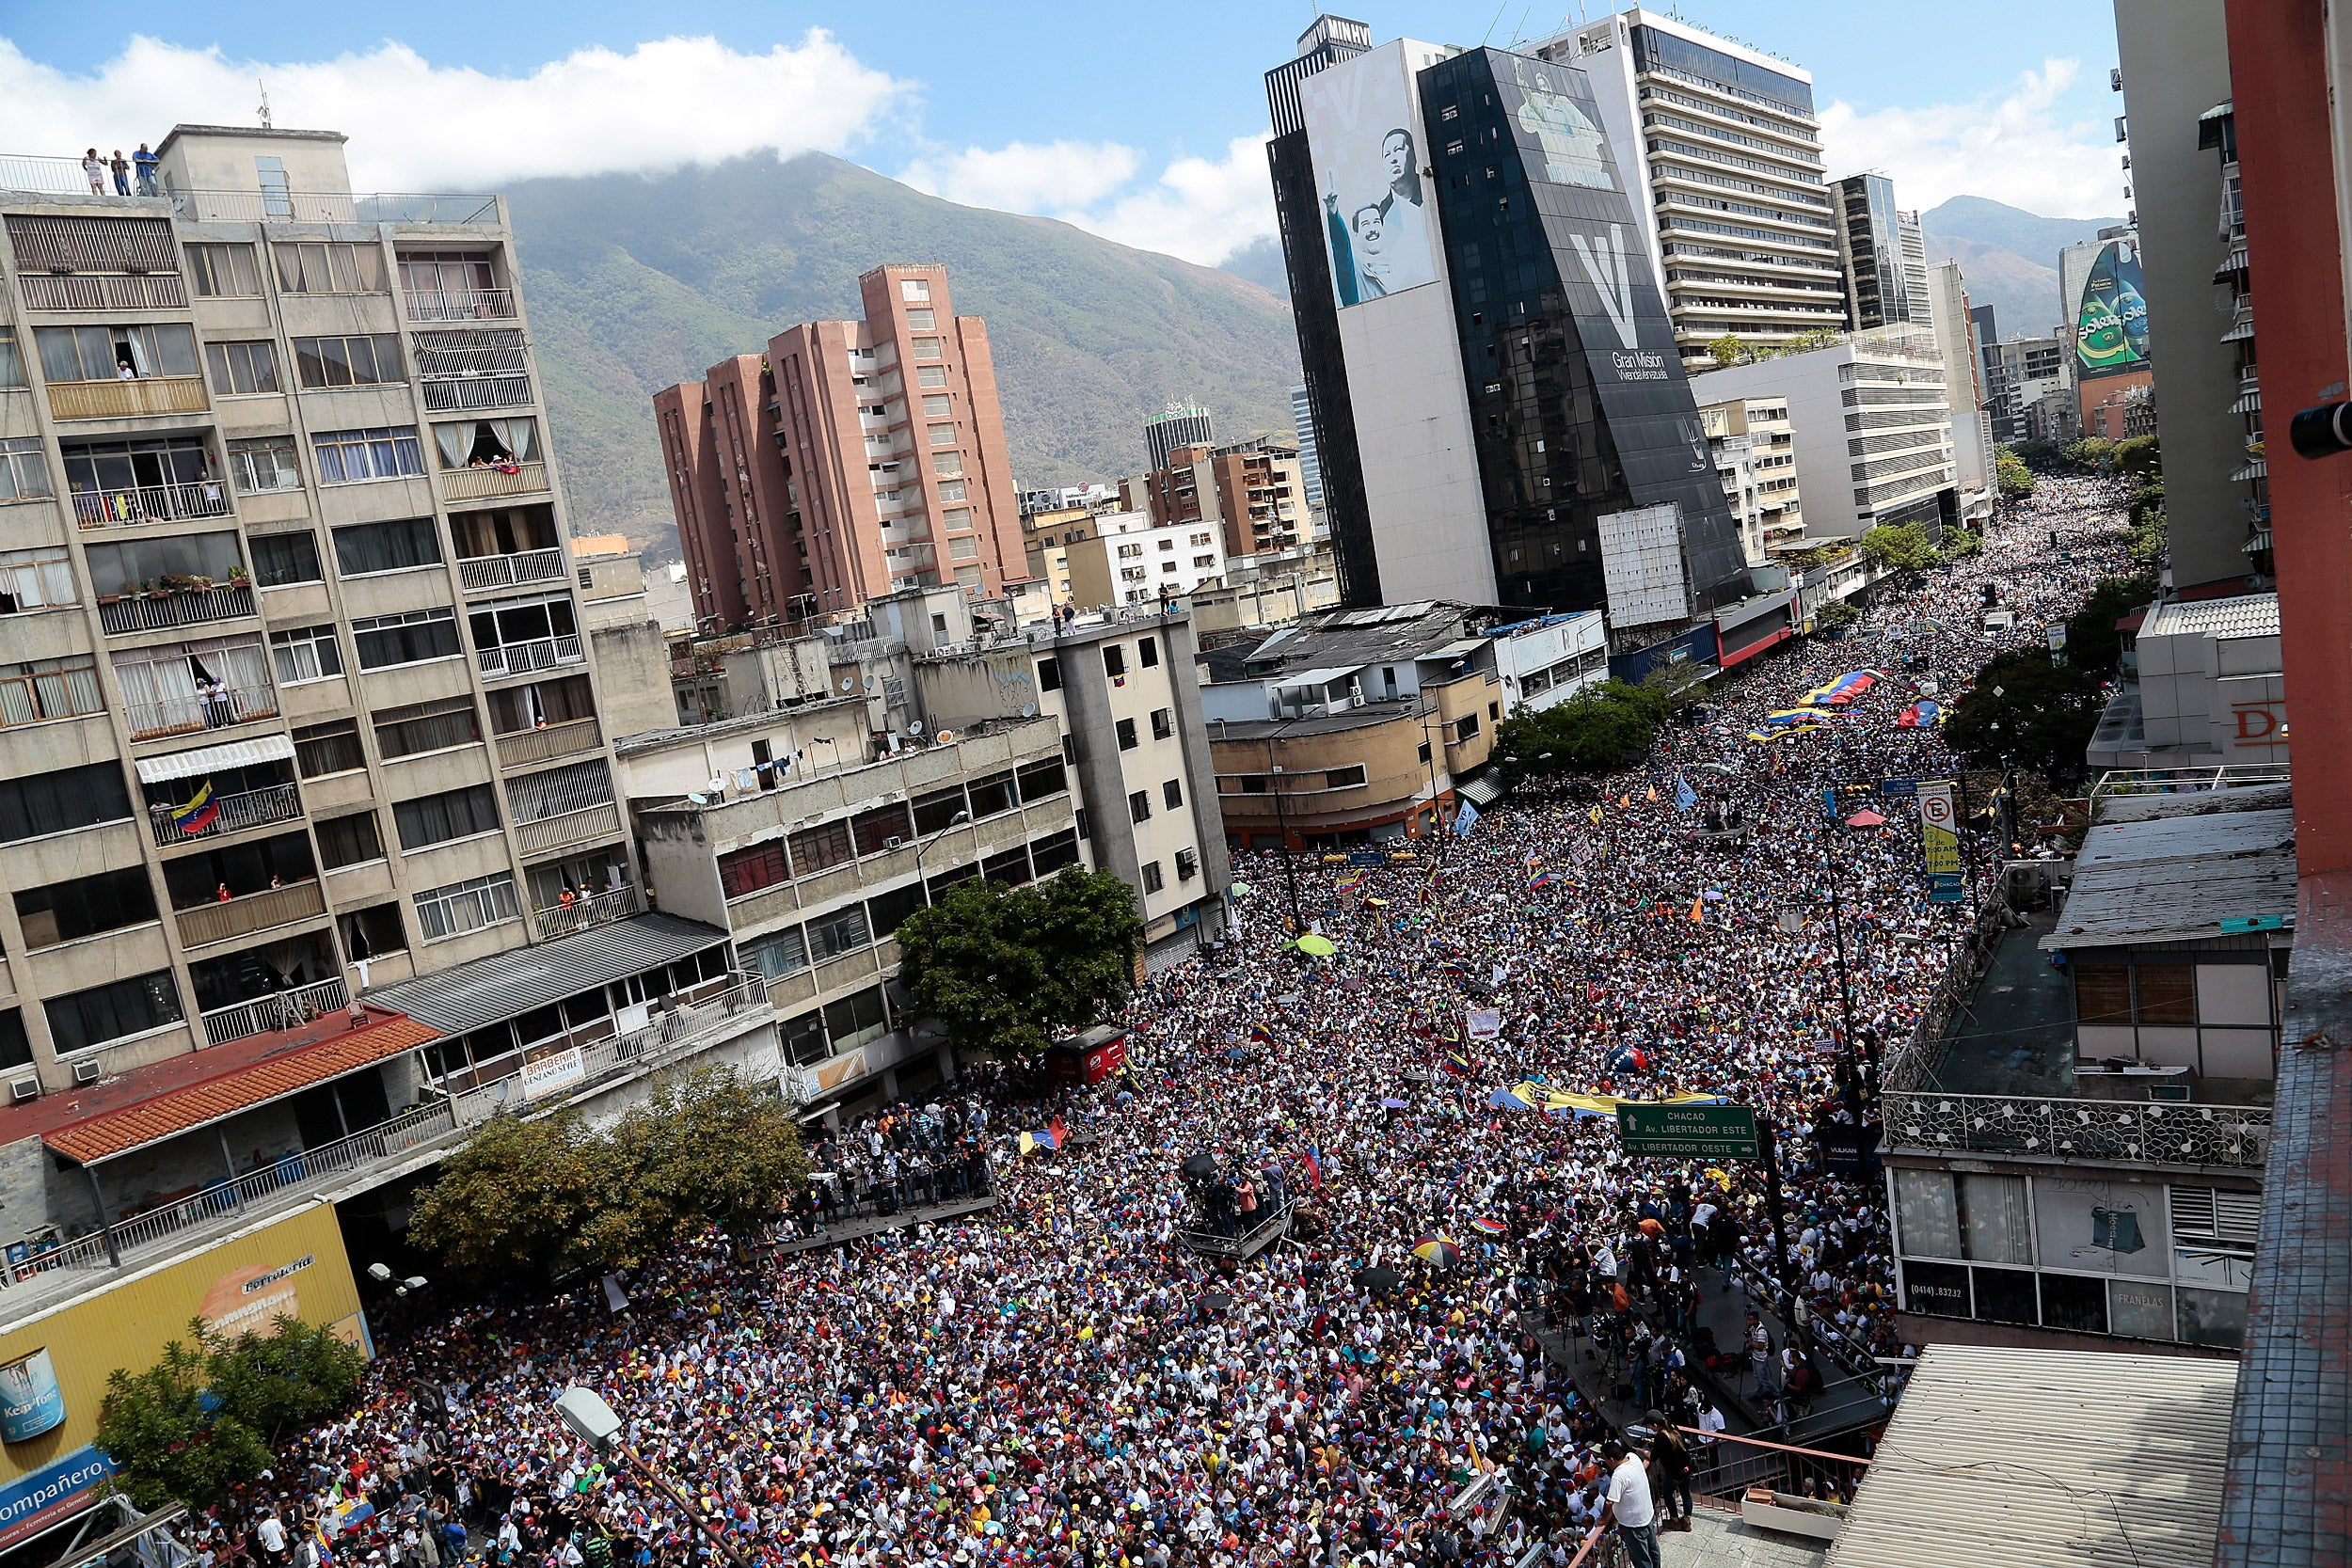 Protesters fill streets of Caracas,